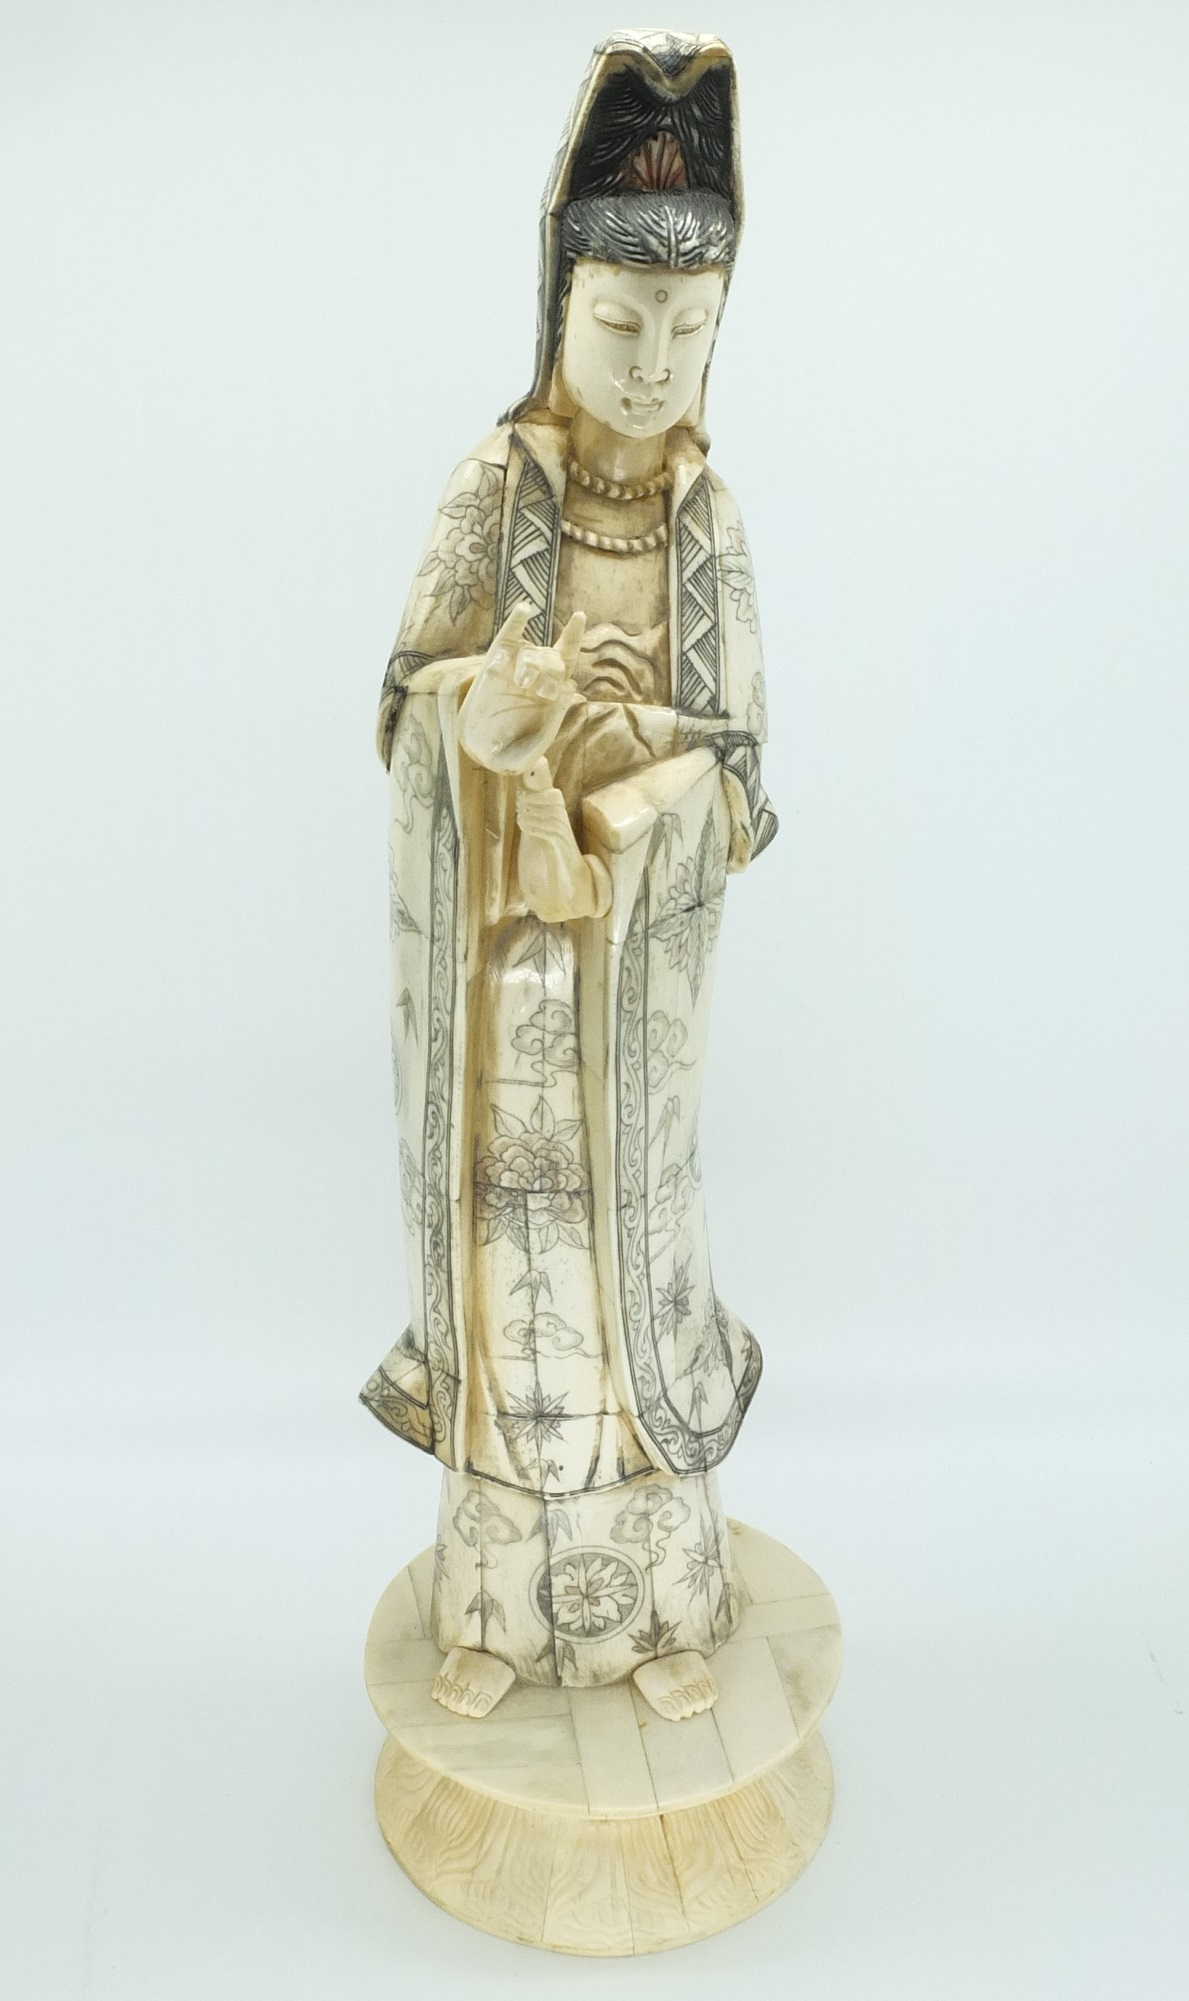 'Carved and Engraved Laminated Bone Figure of Guanyin 20th Century'